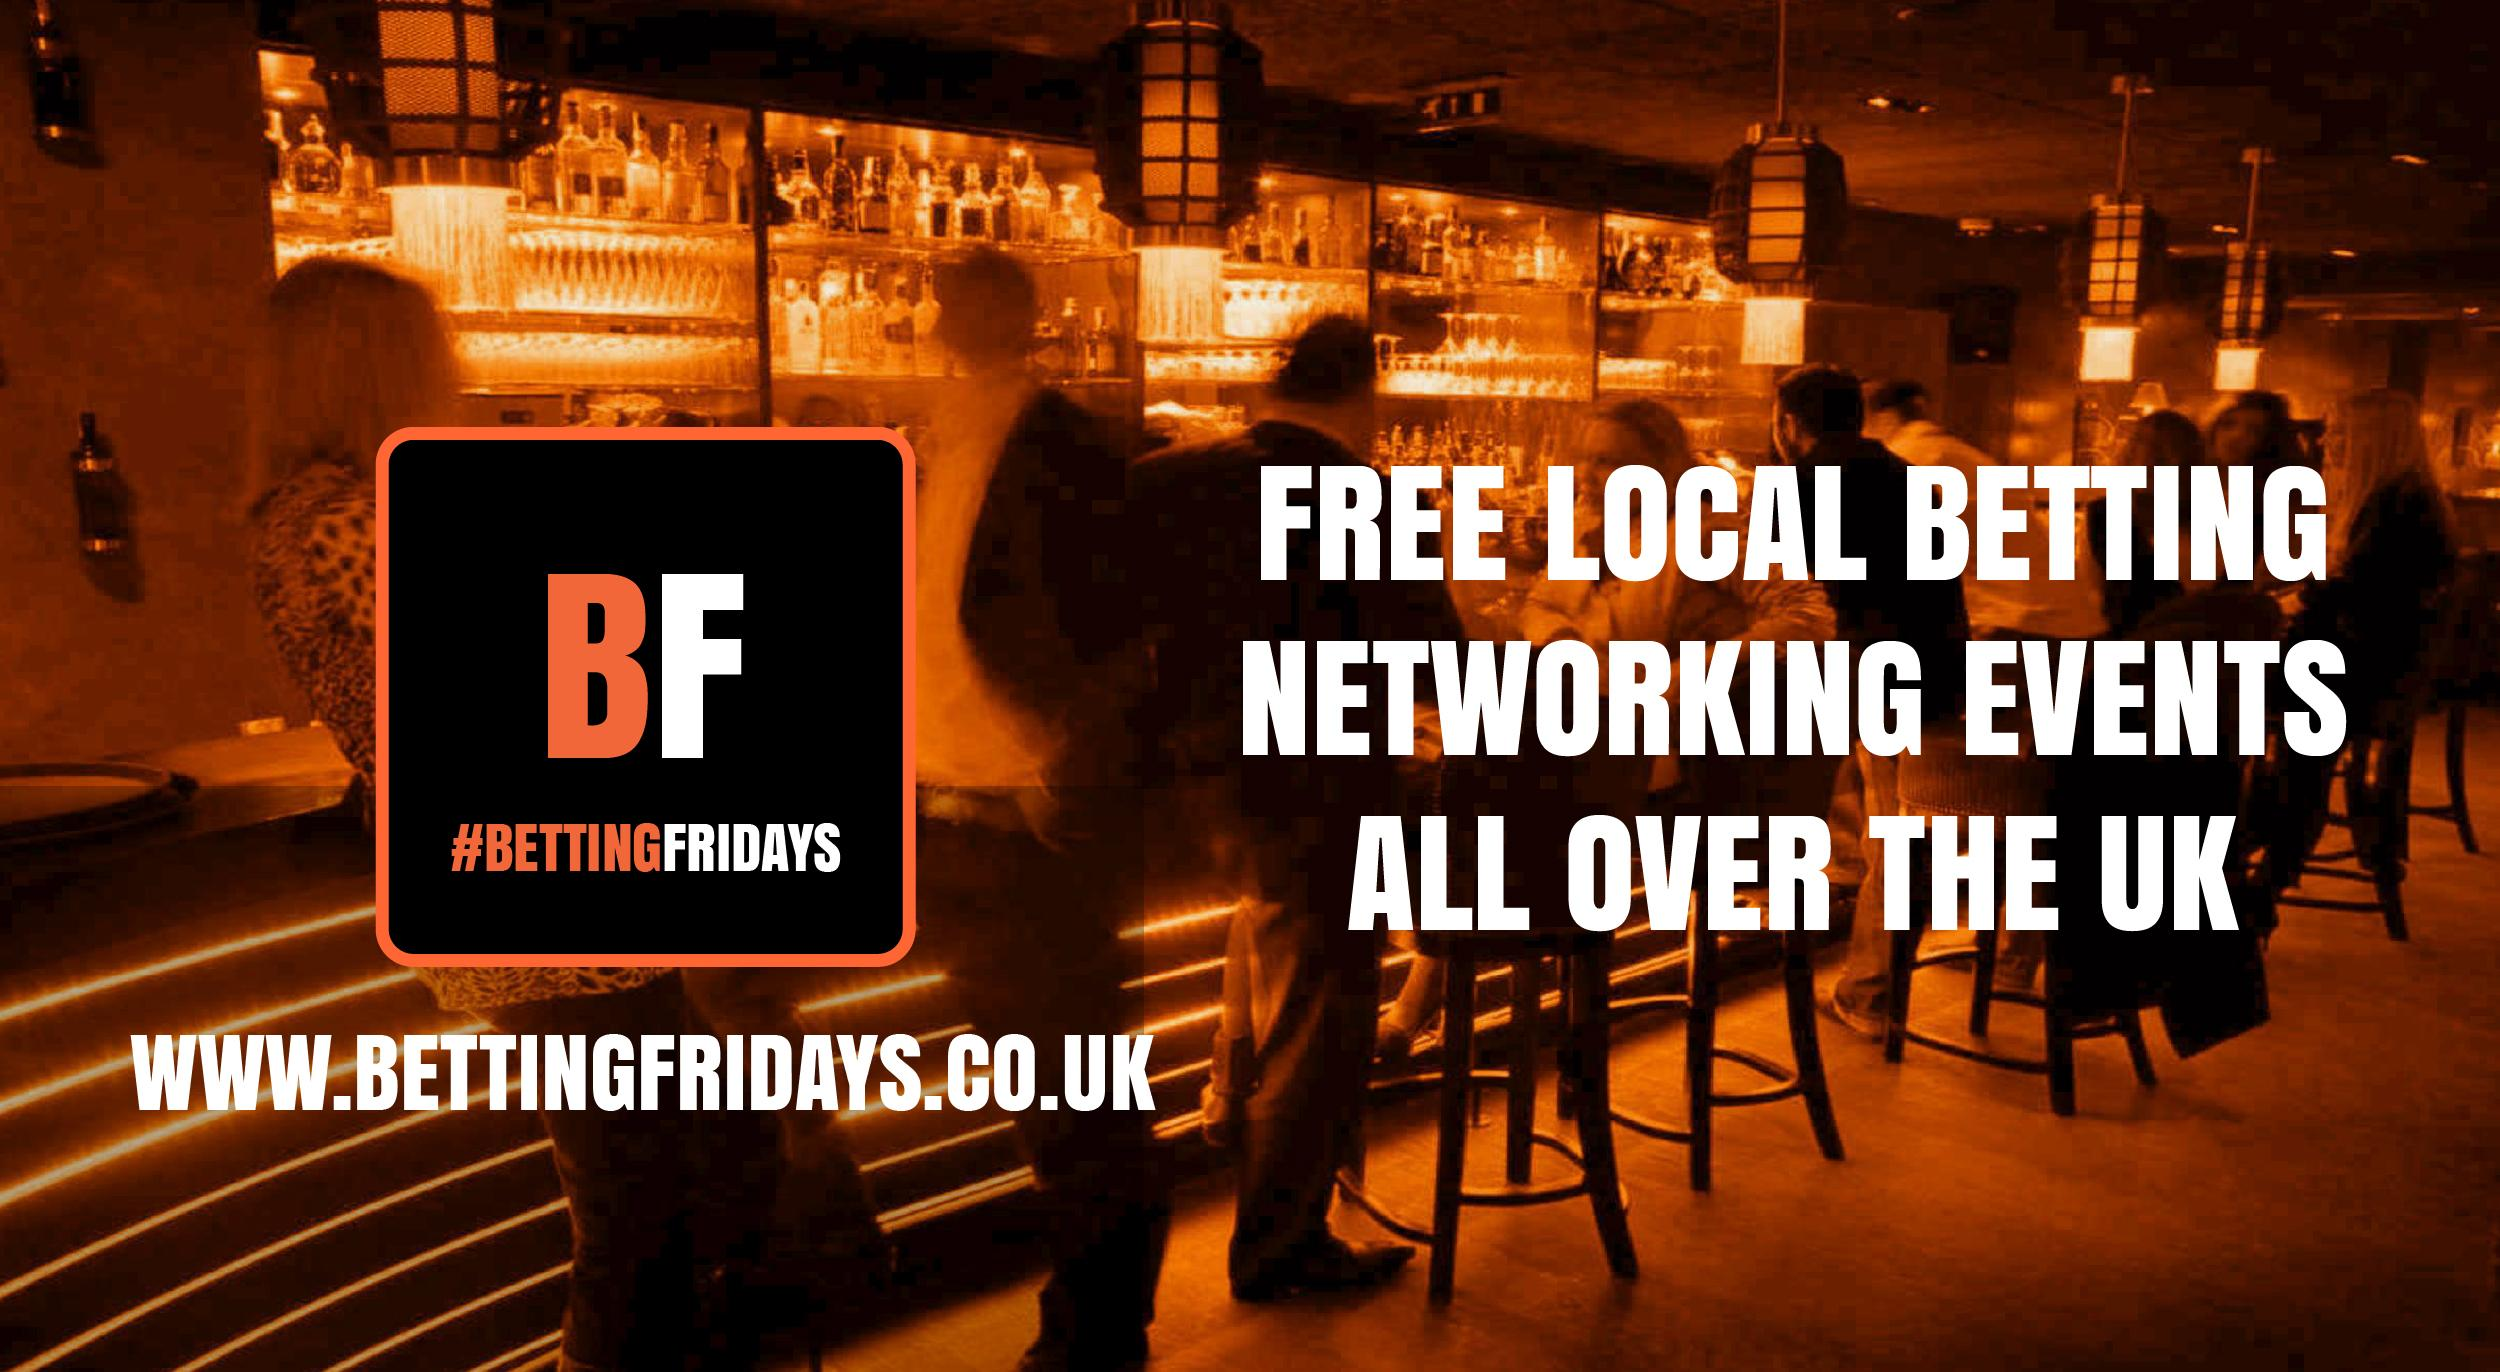 Betting Fridays! Free betting networking event in Windsor